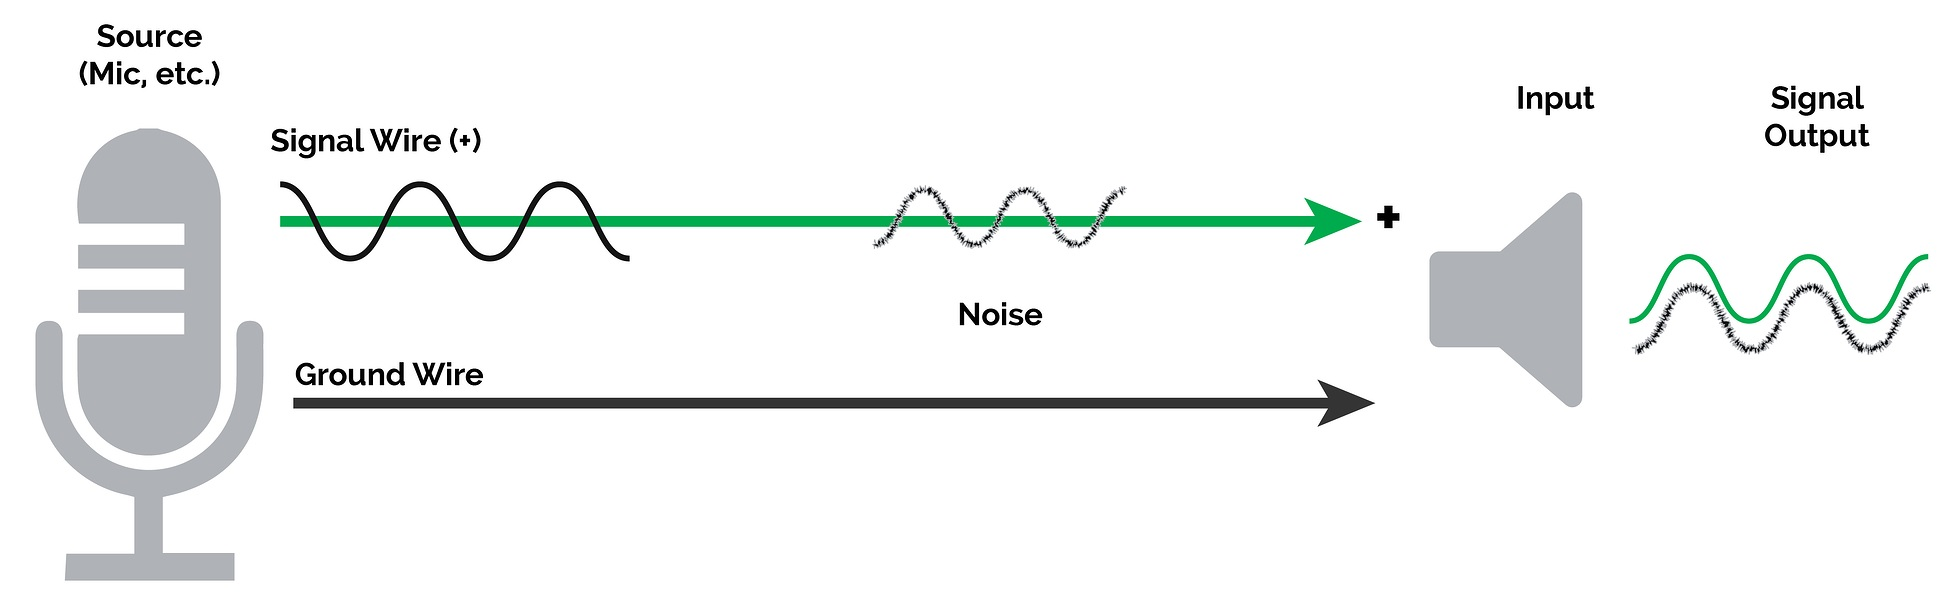 Single-Ended Signal